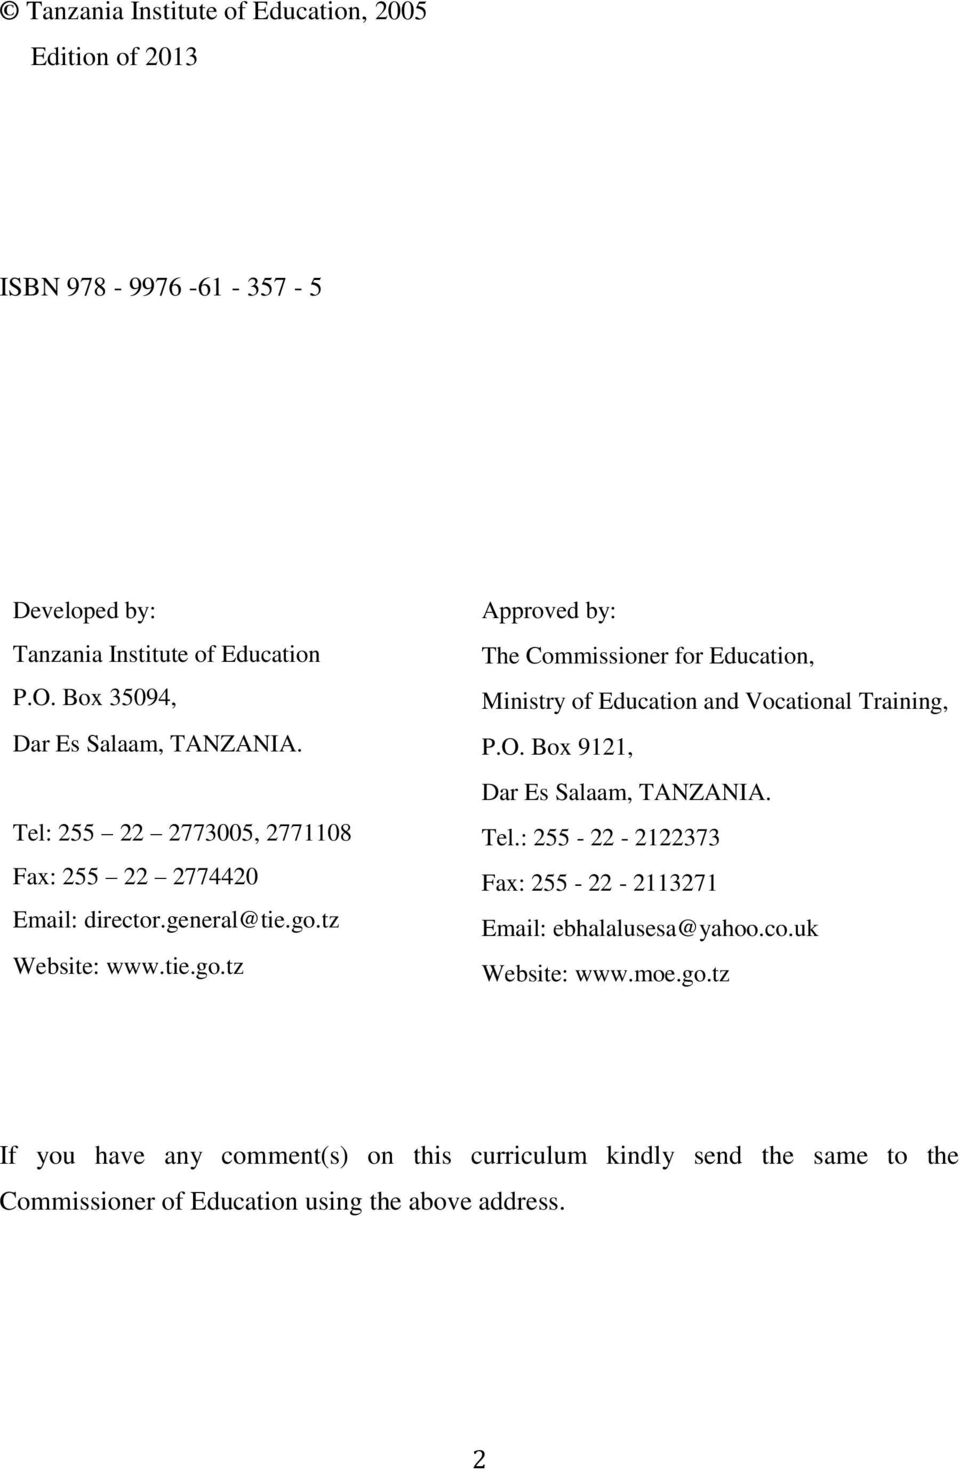 tz Website: www.tie.go.tz Approved by: The Commissioner for Education, Ministry of Education and Vocational Training, P.O. Box 9121, Dar Es Salaam, TANZANIA.